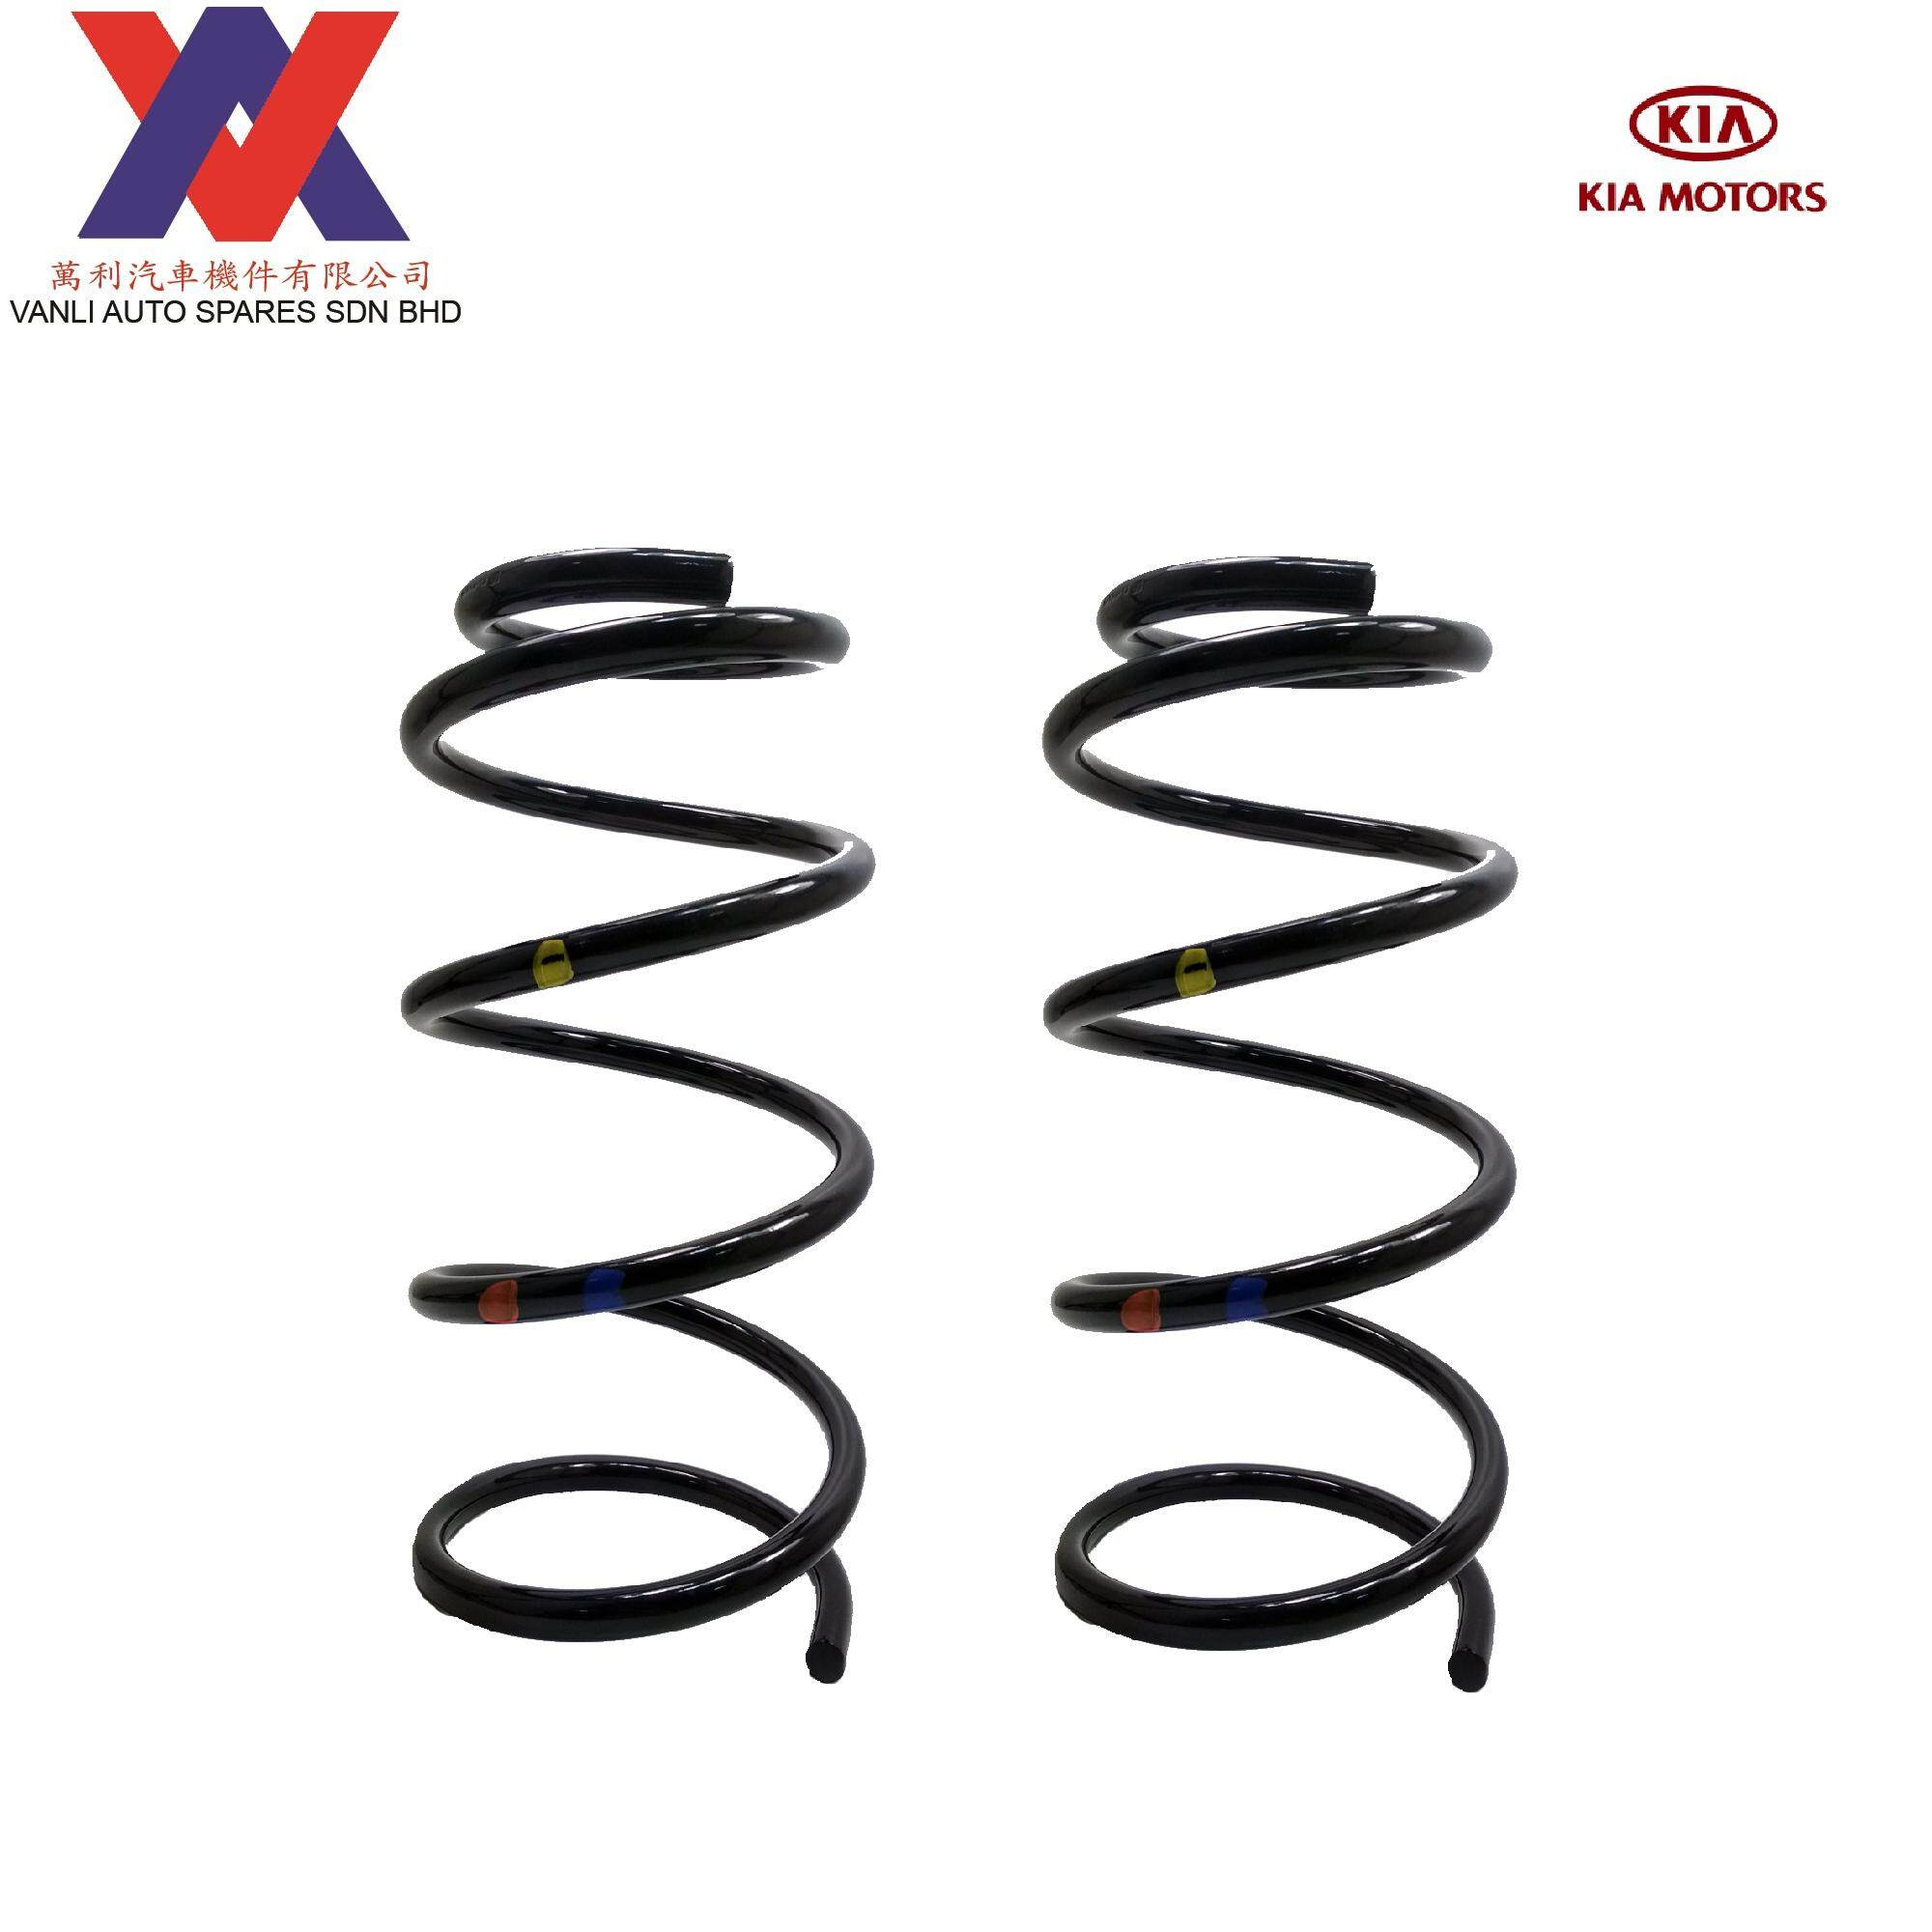 Kia Auto Parts Spares Price In Malaysia Best Sedona Headlight Replacement Further 2002 Diagram Front Coil Spring For Rio 14cc 2005 1 Pair R